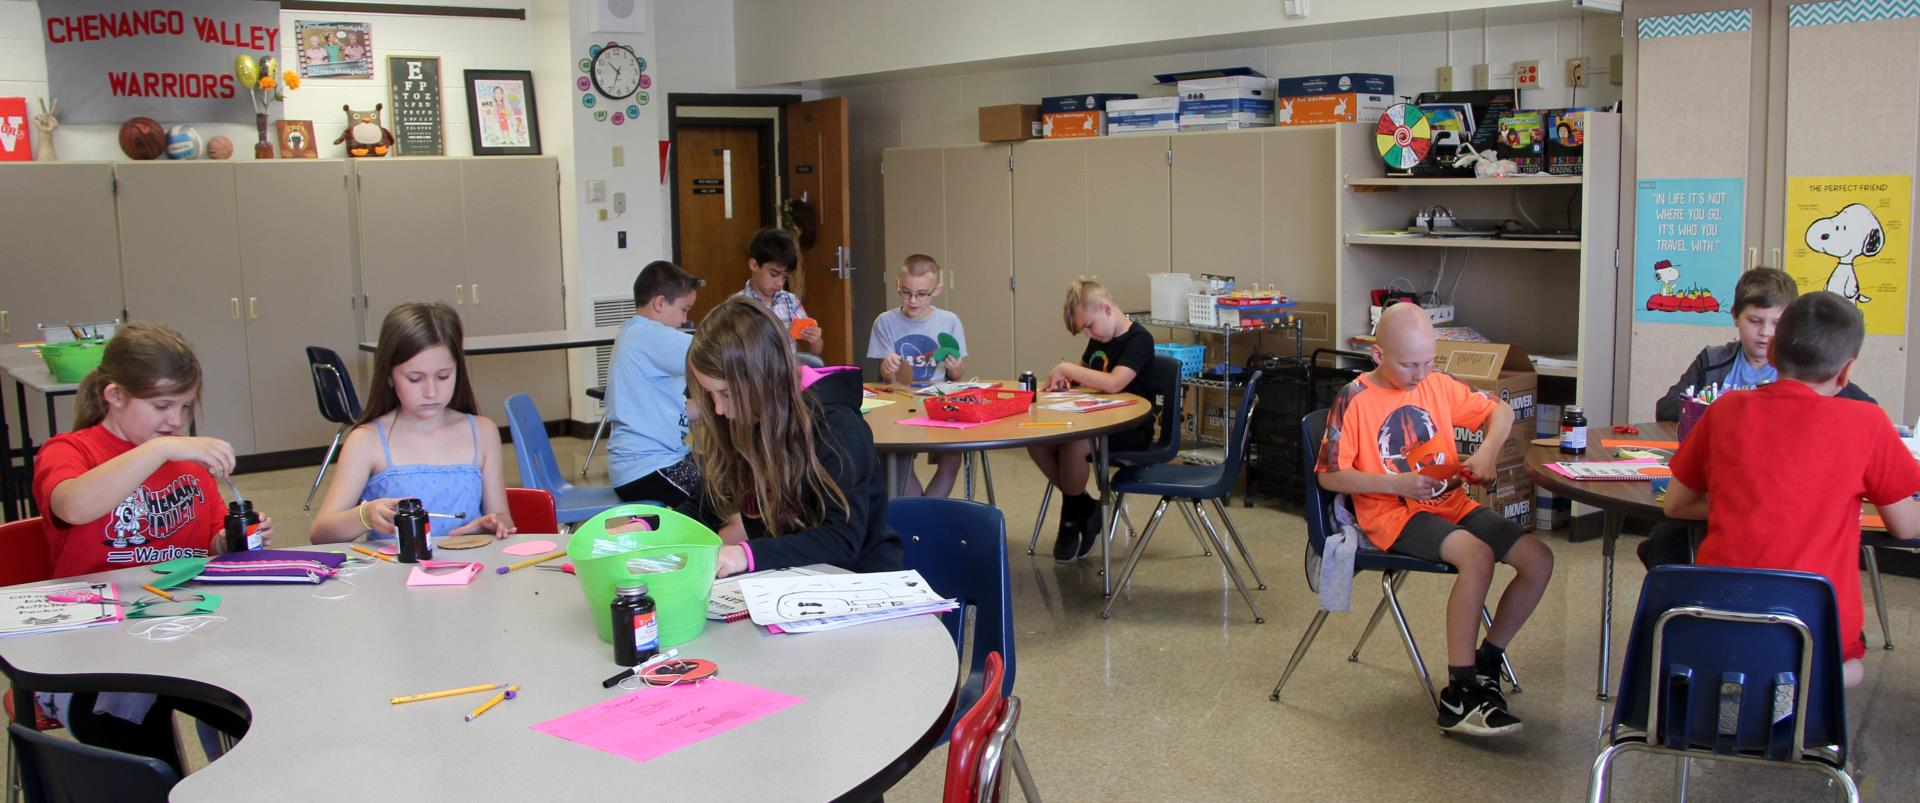 students in classroom designing whirligig toys